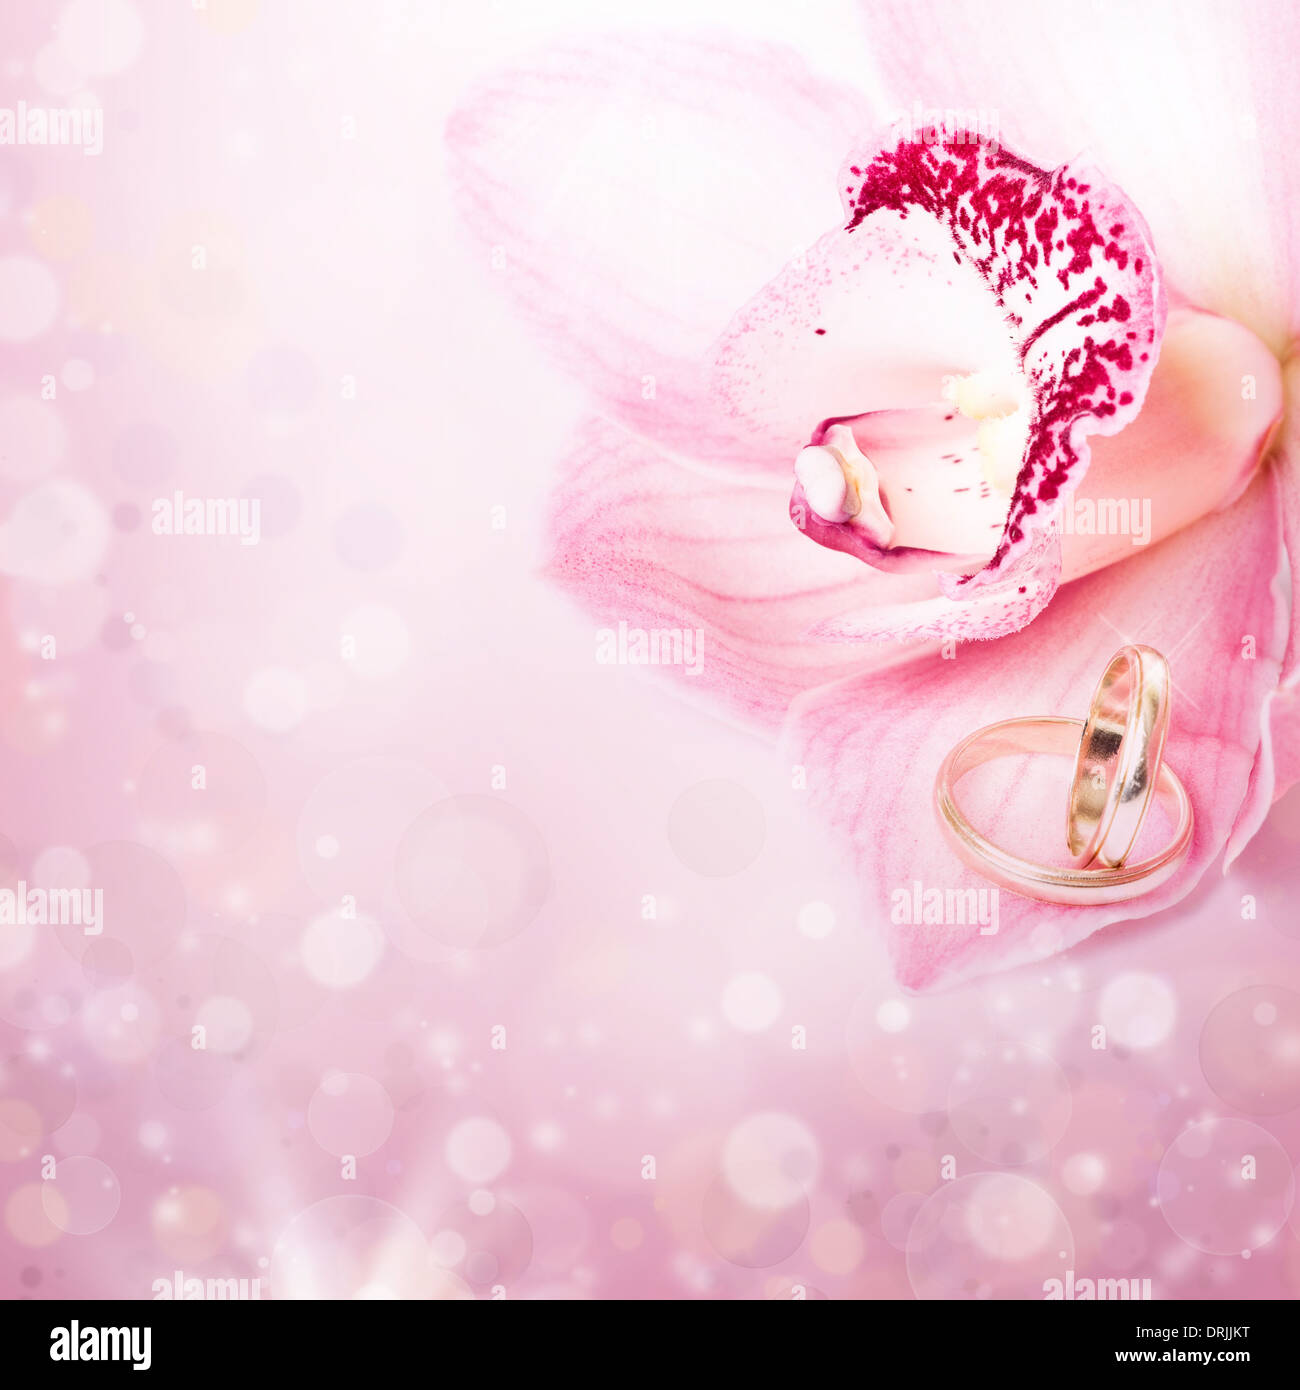 Orchid and wedding ring on pink background Stock Photo: 66177996 - Alamy